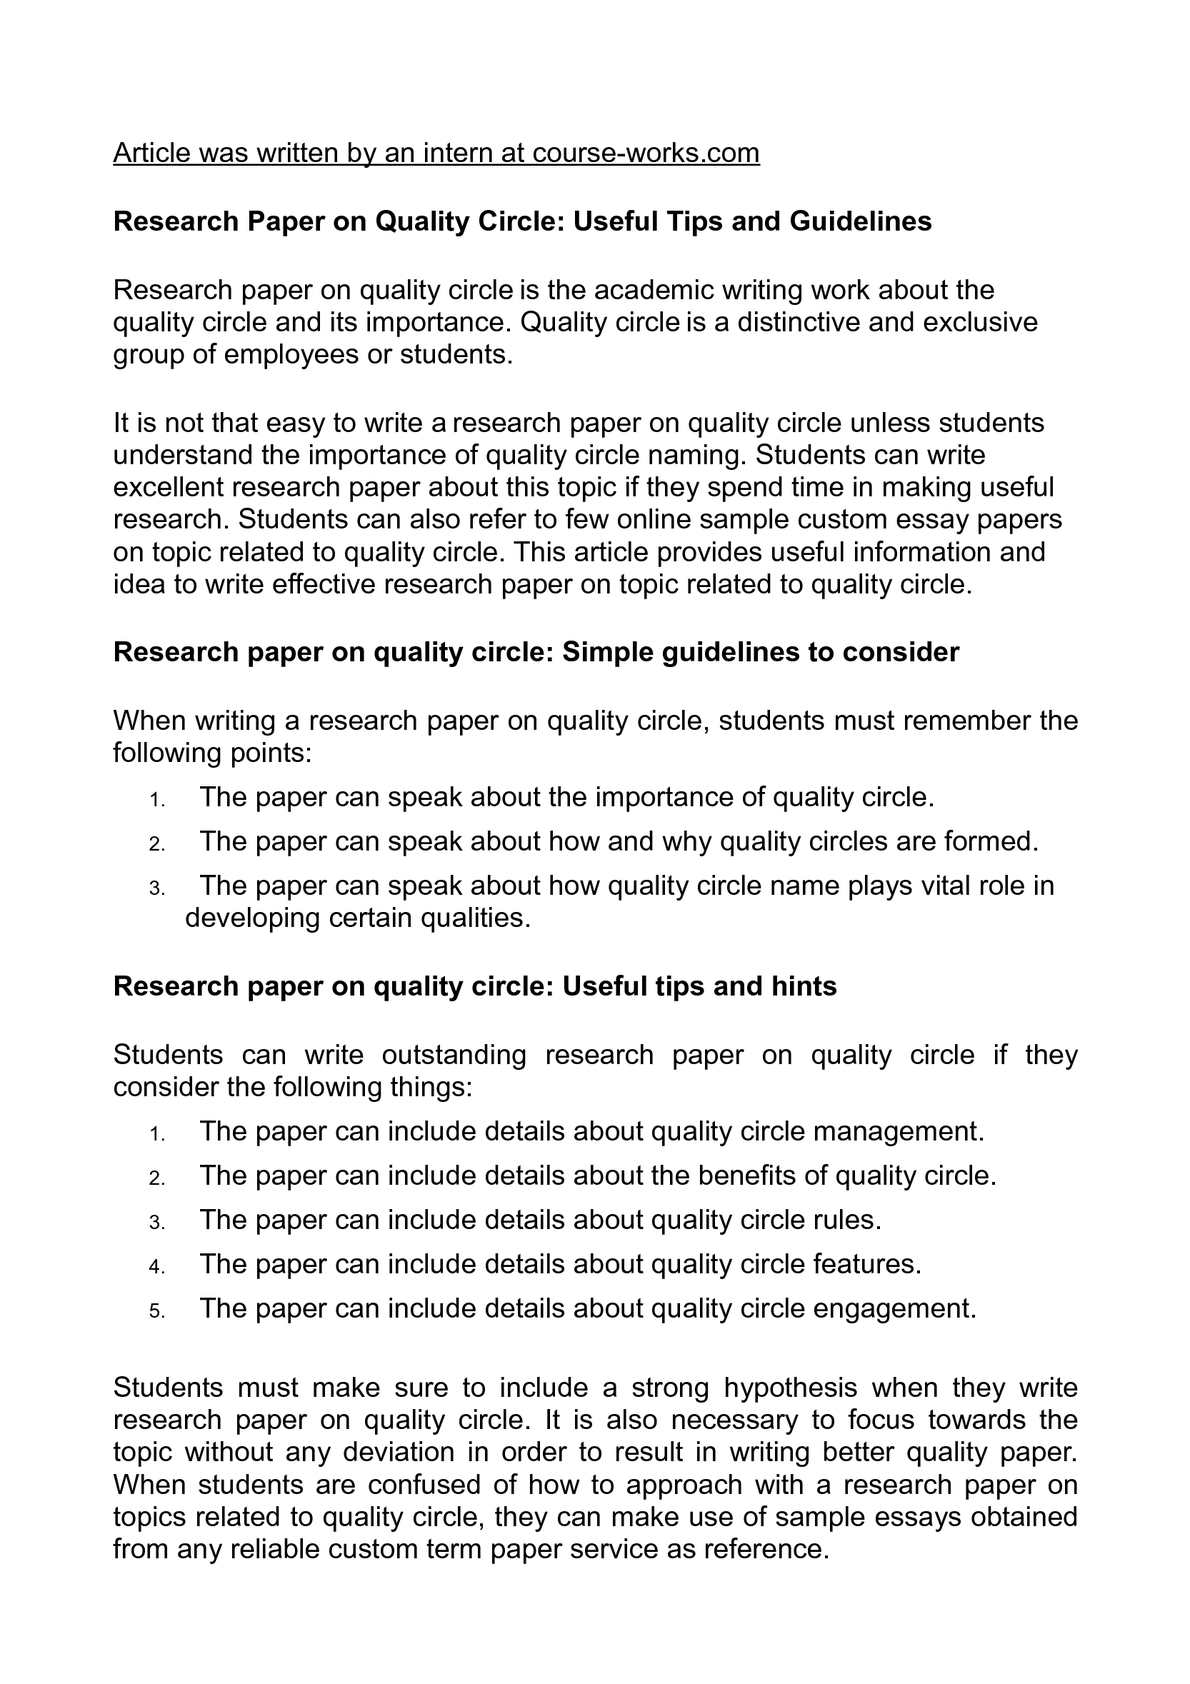 015 Importance Of Term Paper Writing Research Custom Breathtaking Writer Service Full